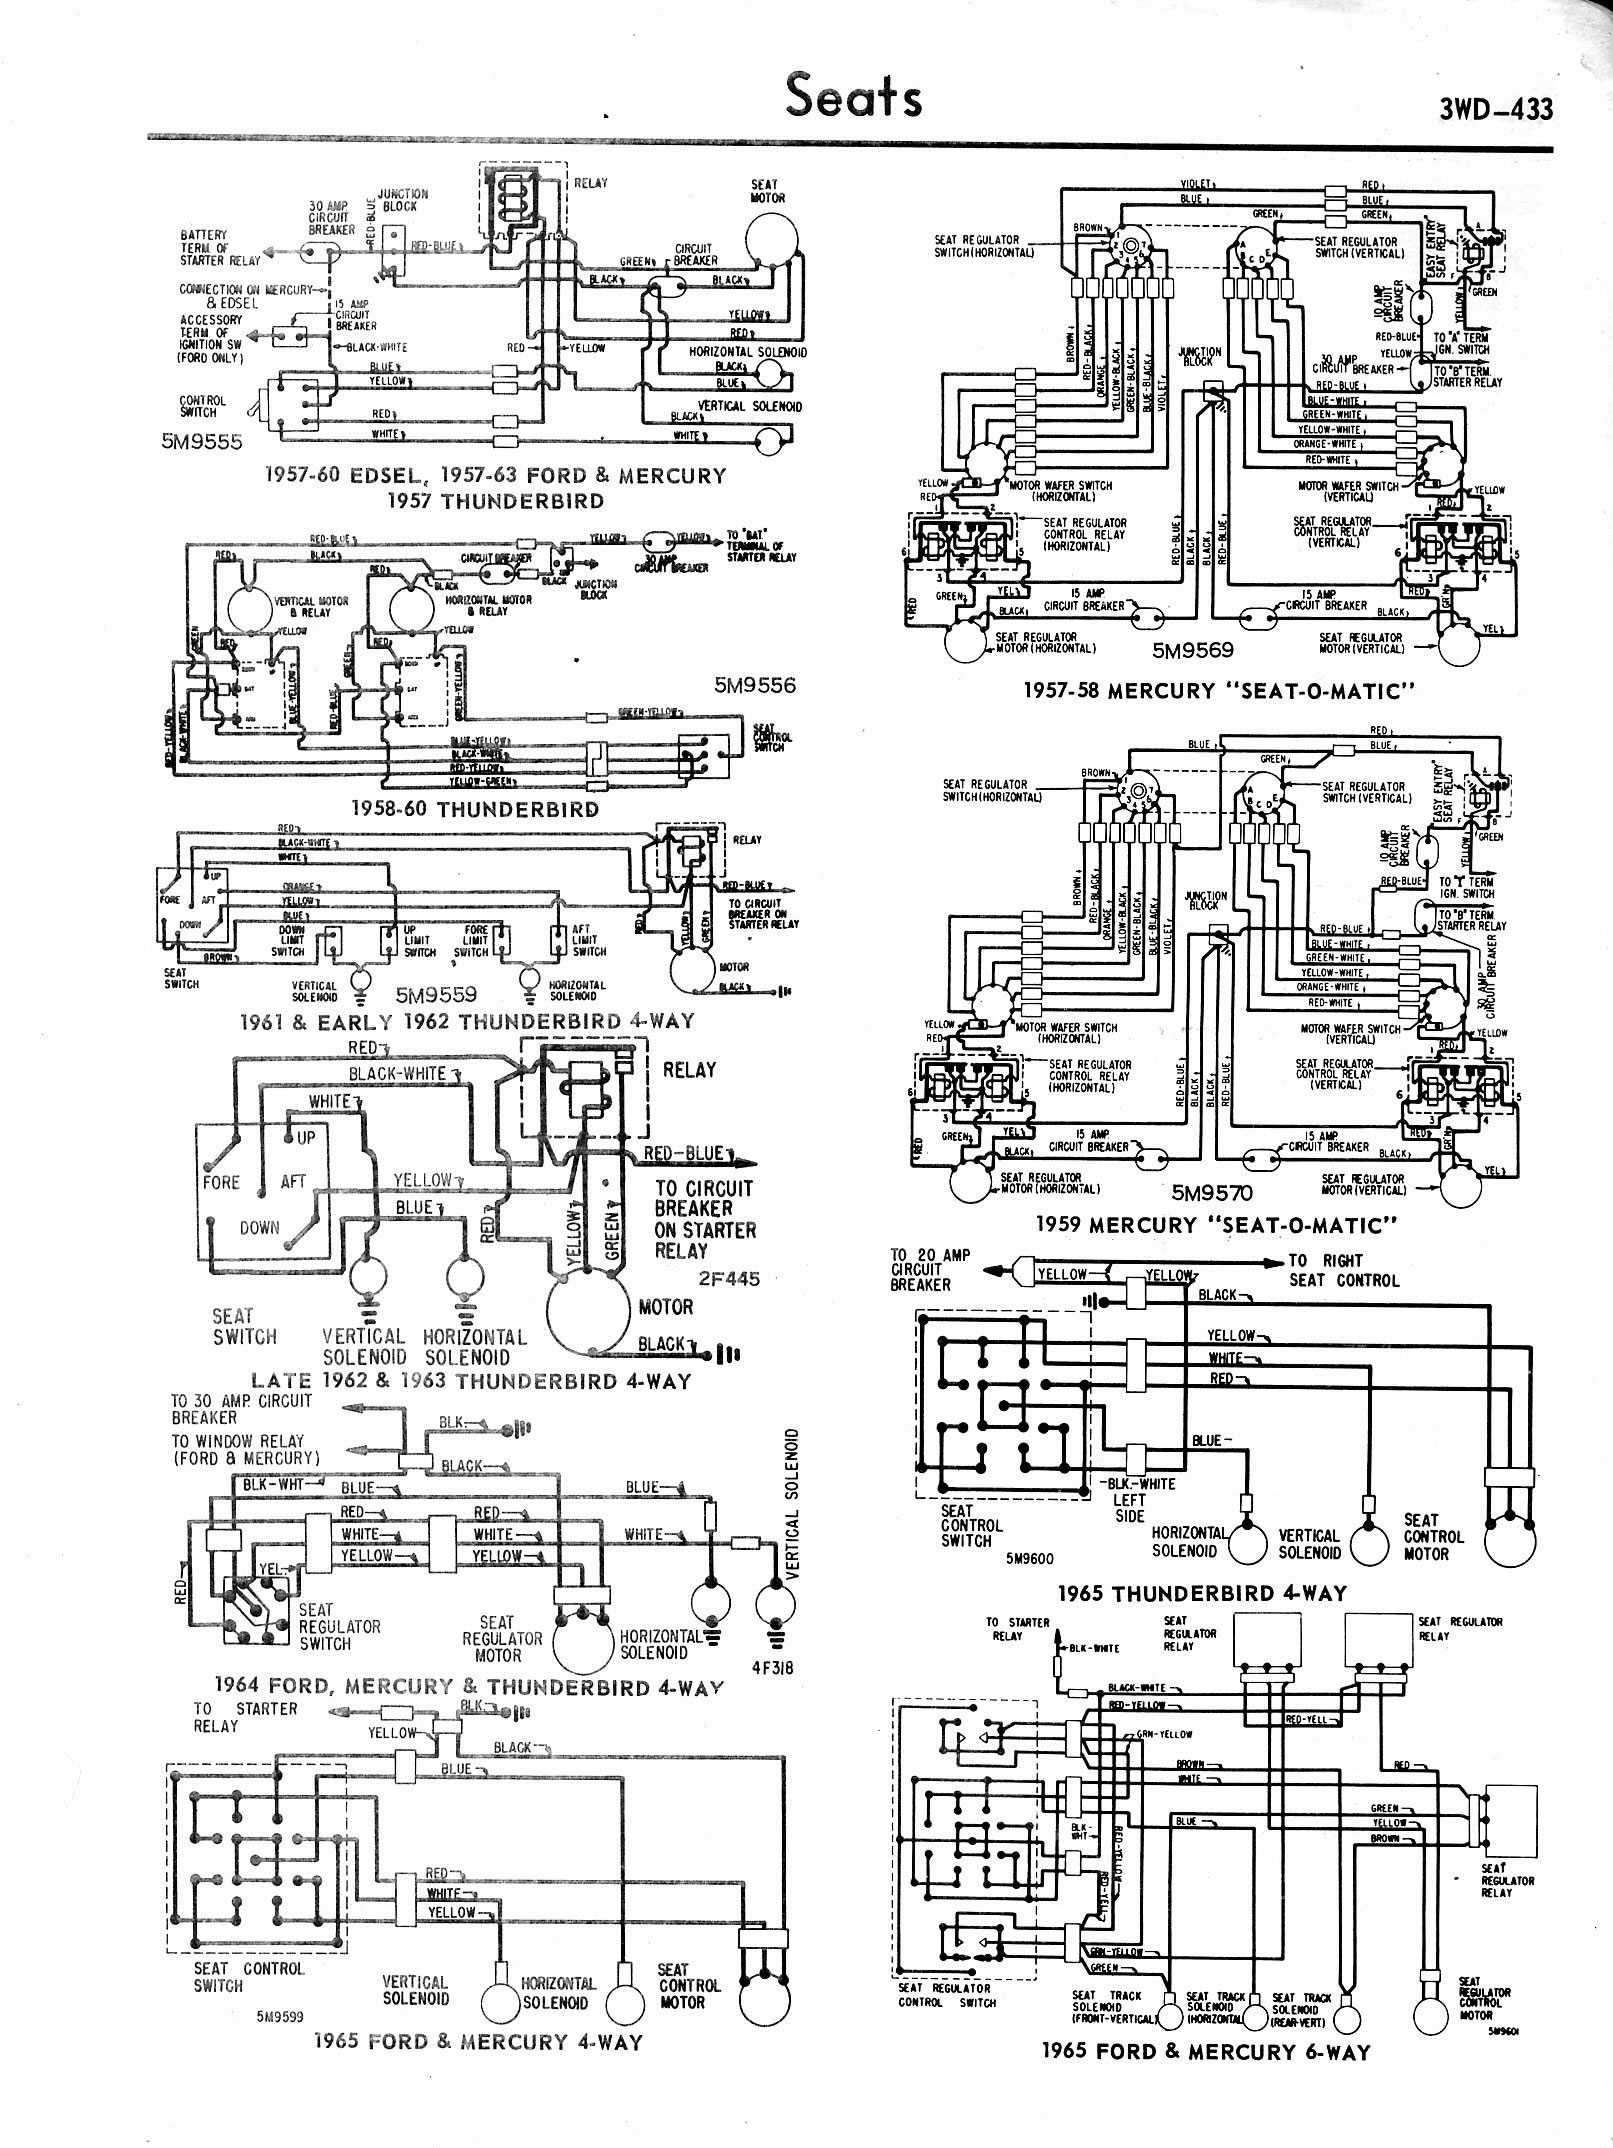 1957 ford power window wiring diagram